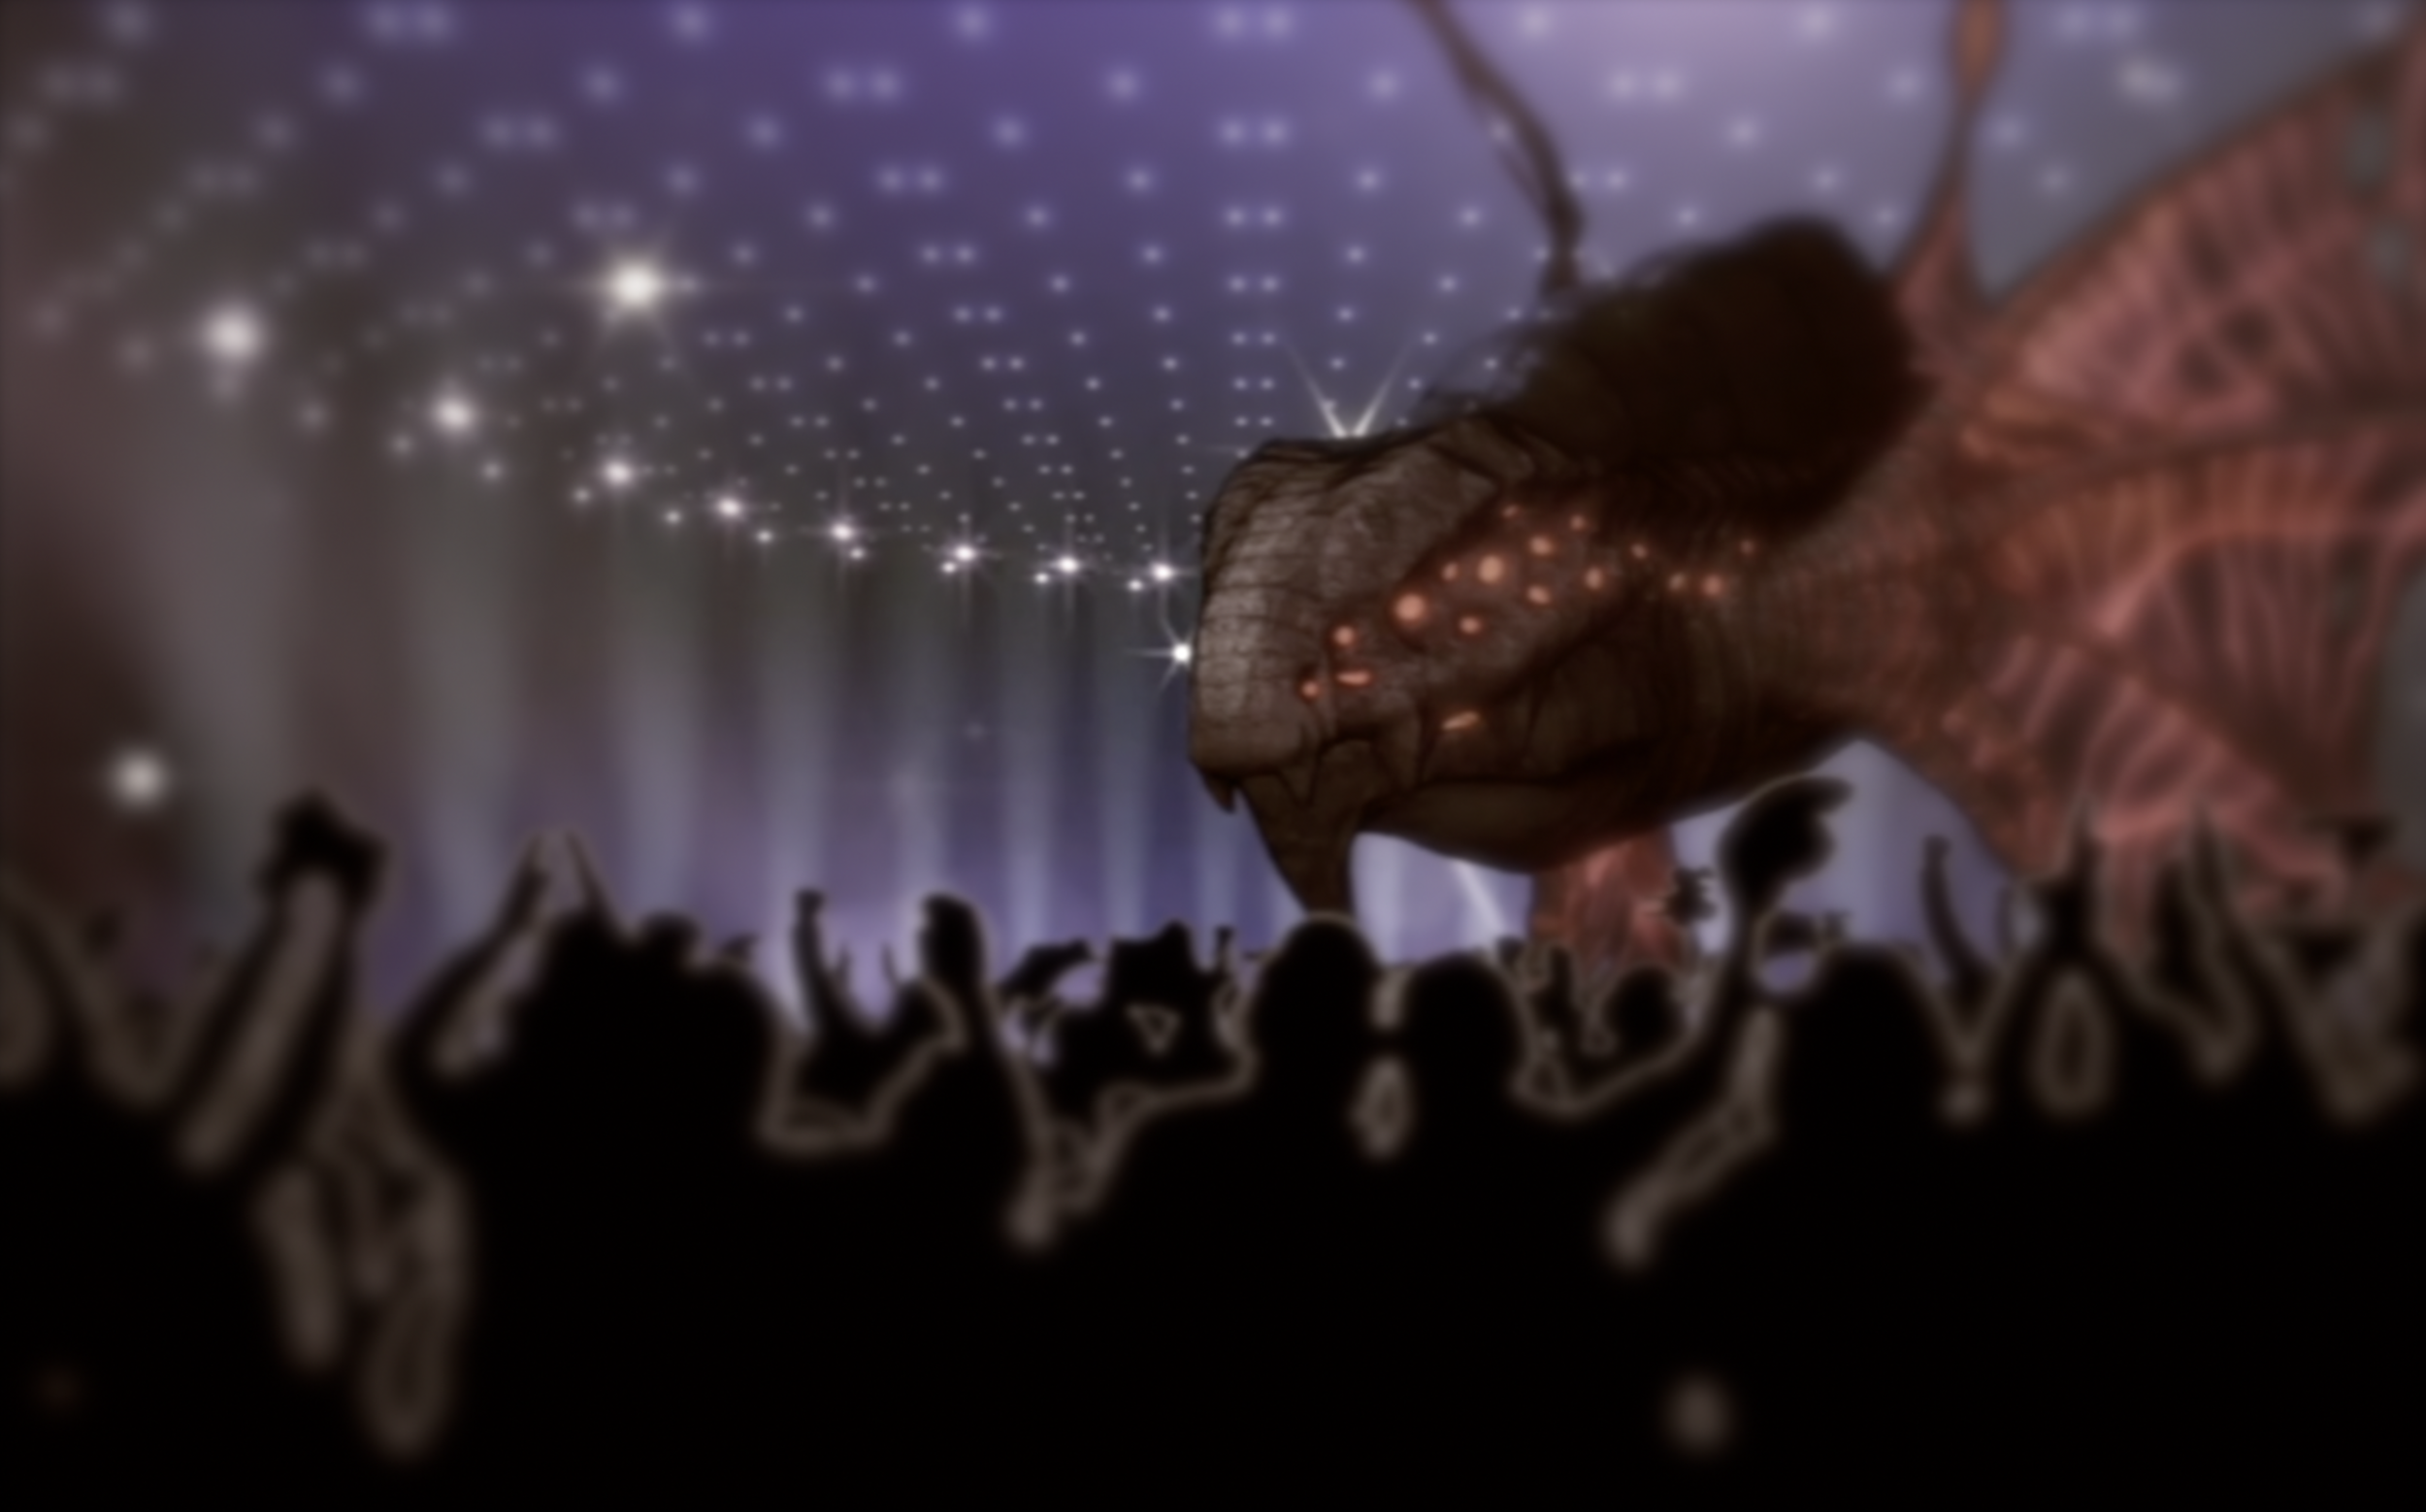 Image: The Ether Drake performing at Xenovision moments before he was interrupted by a stage invader.